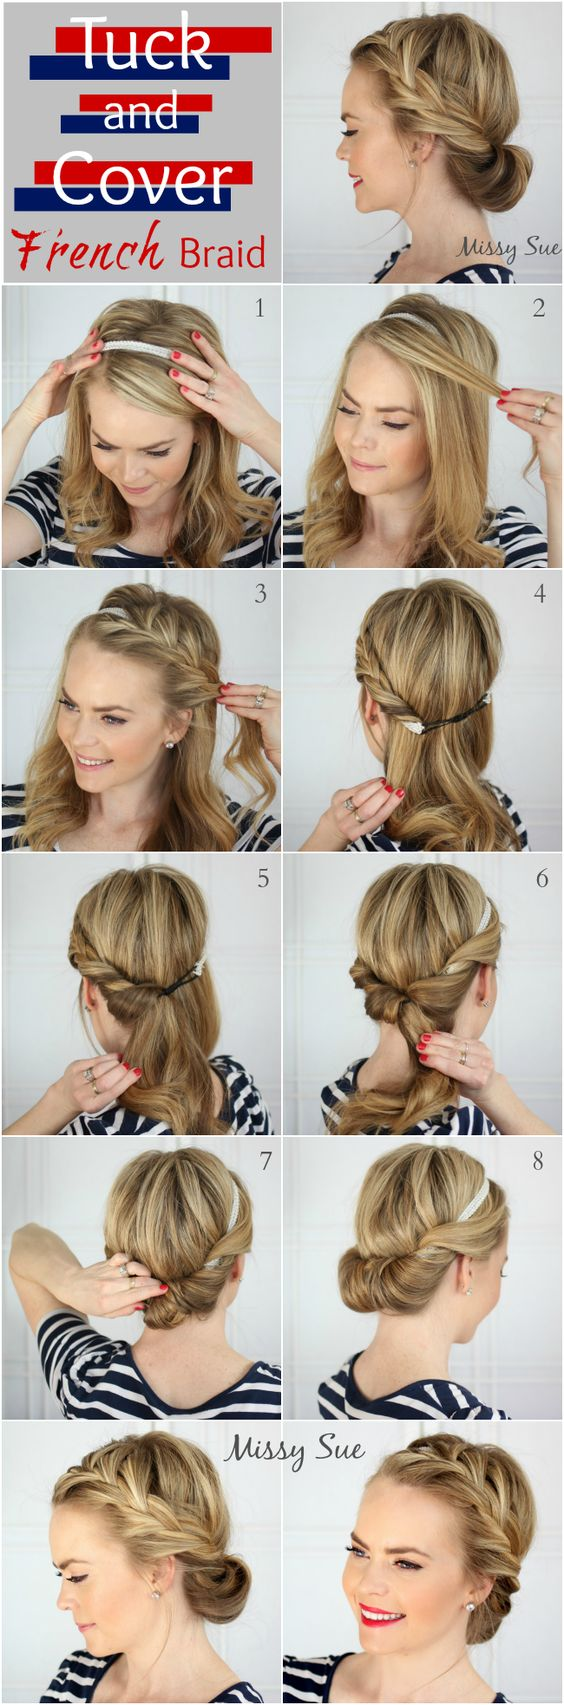 hair styling tutorial 11 easy step by step updo tutorials for beginners hair 7145